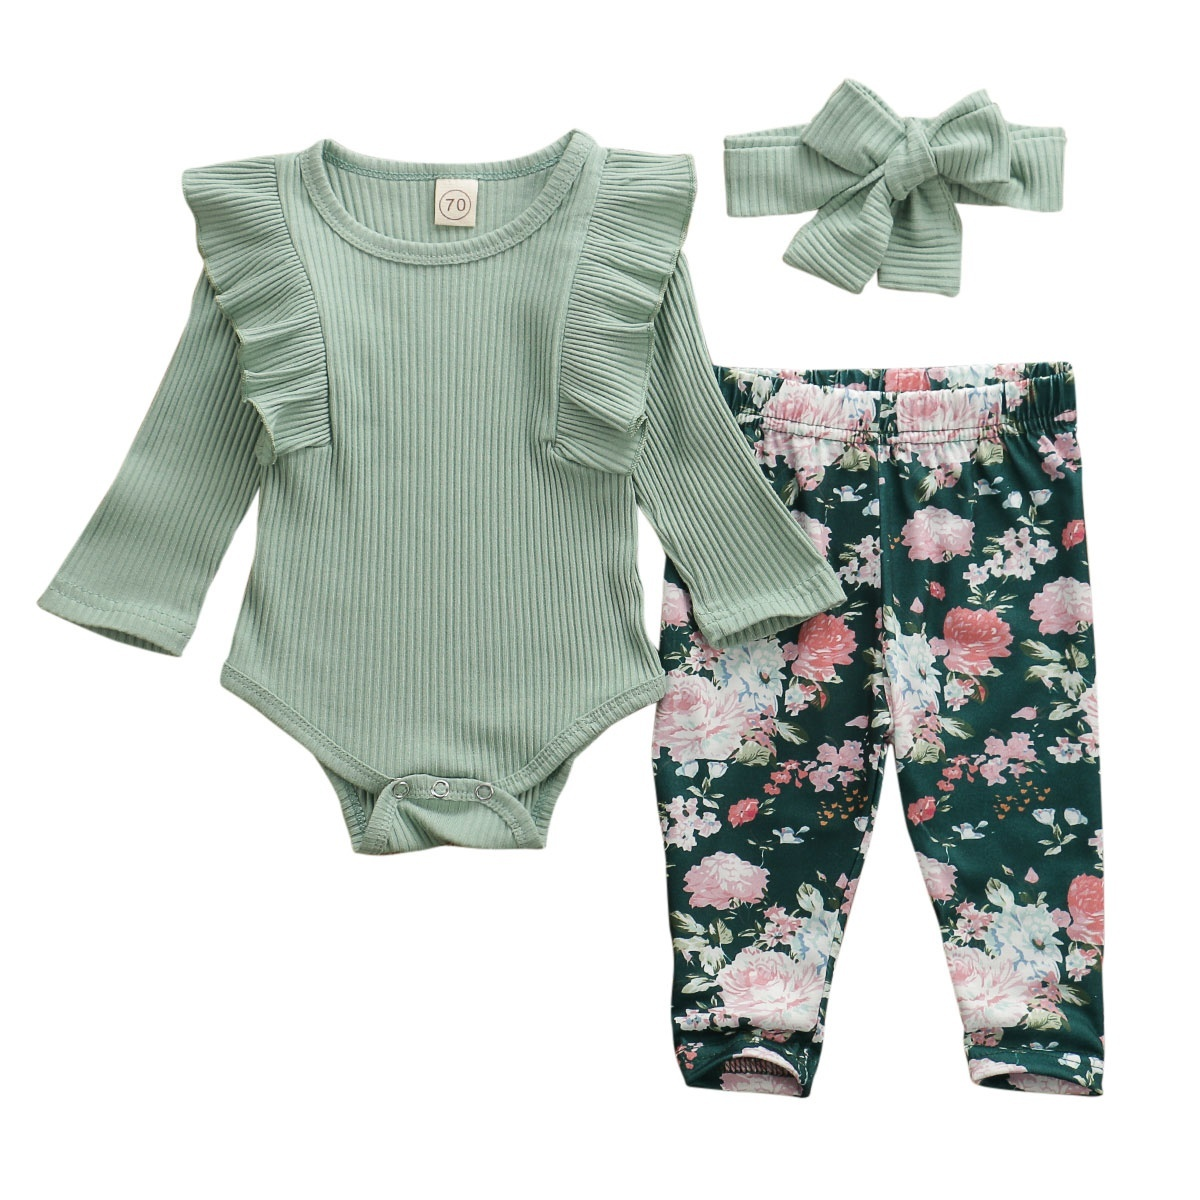 New Infant Baby Girl Romper Jumpsuit Palysuit Floral Leggings Outfit Set Casual Long Pants Trouser Headband Outfits